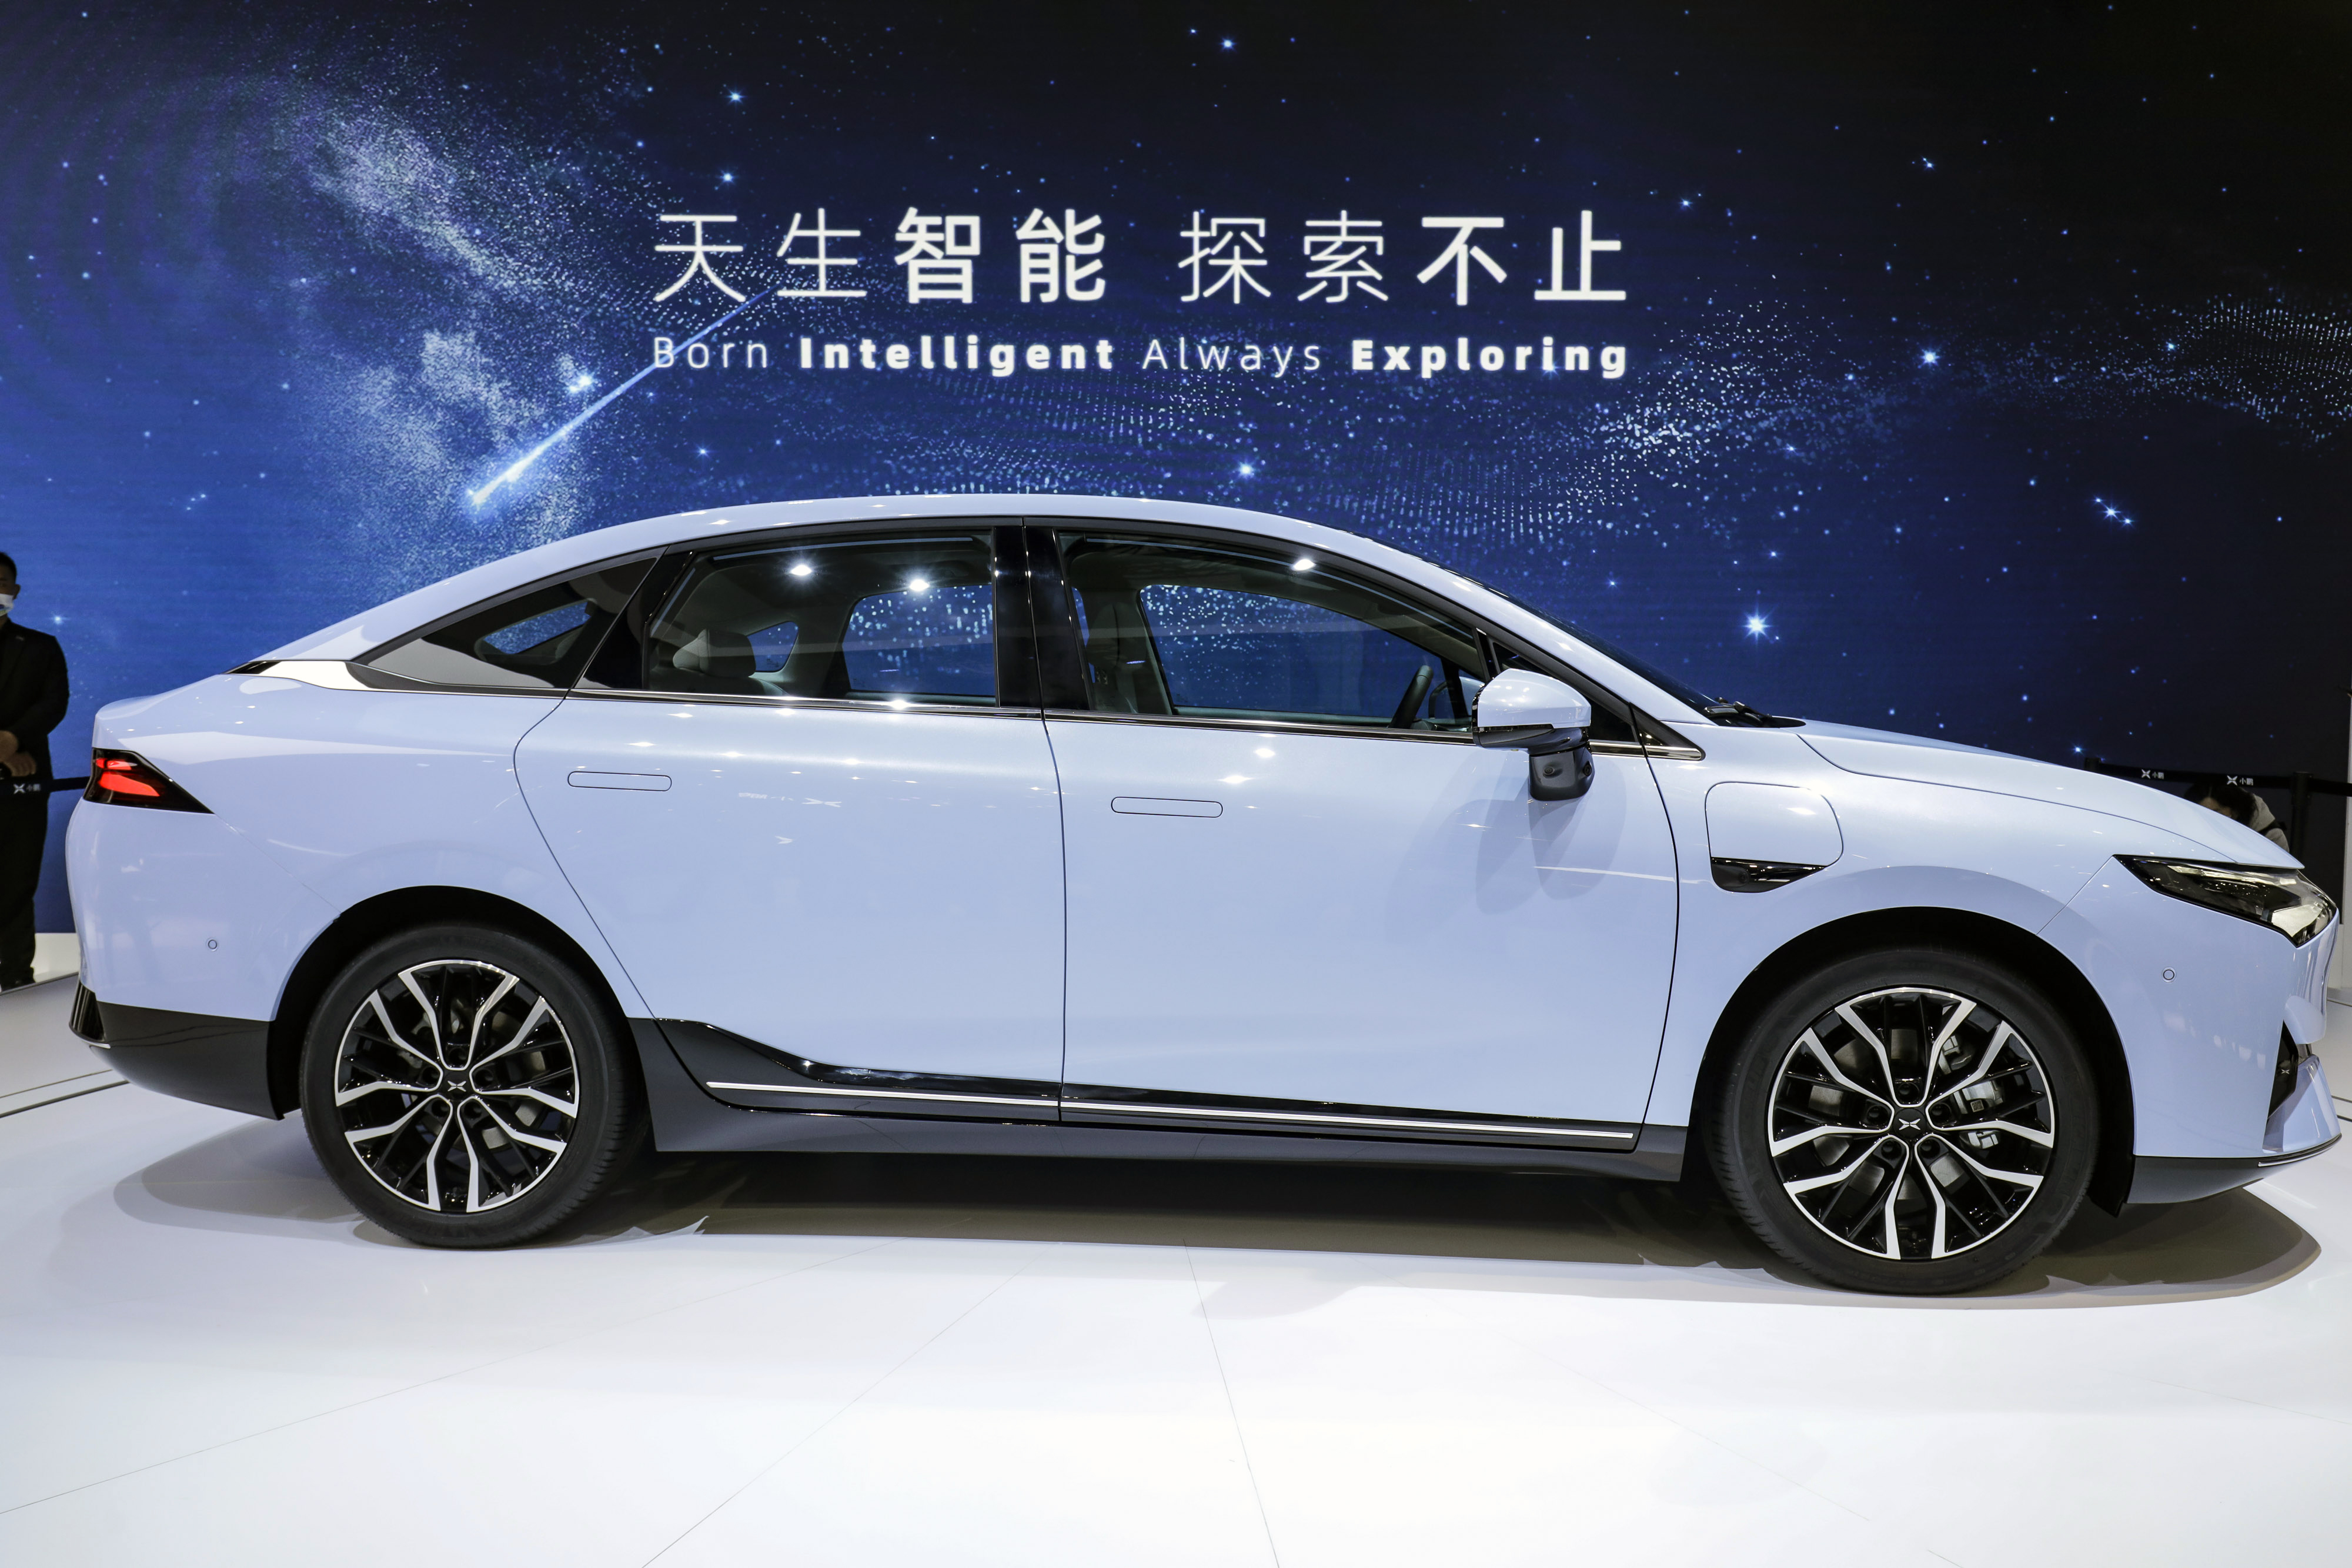 Xpeng P5 electric vehicle